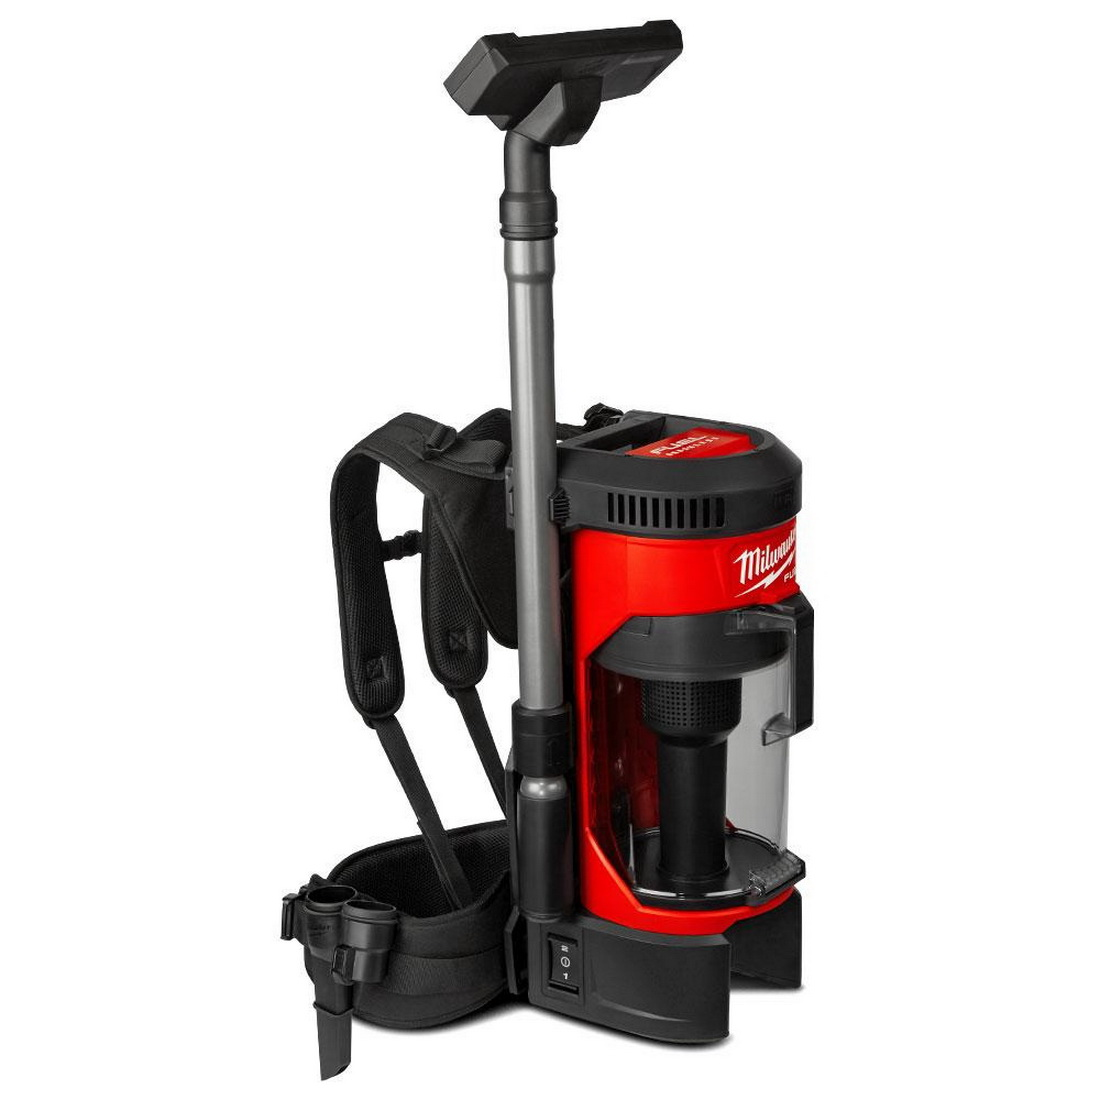 M18 FUEL Cordless 3 in 1 Backpack Vacuum (Tool Only)